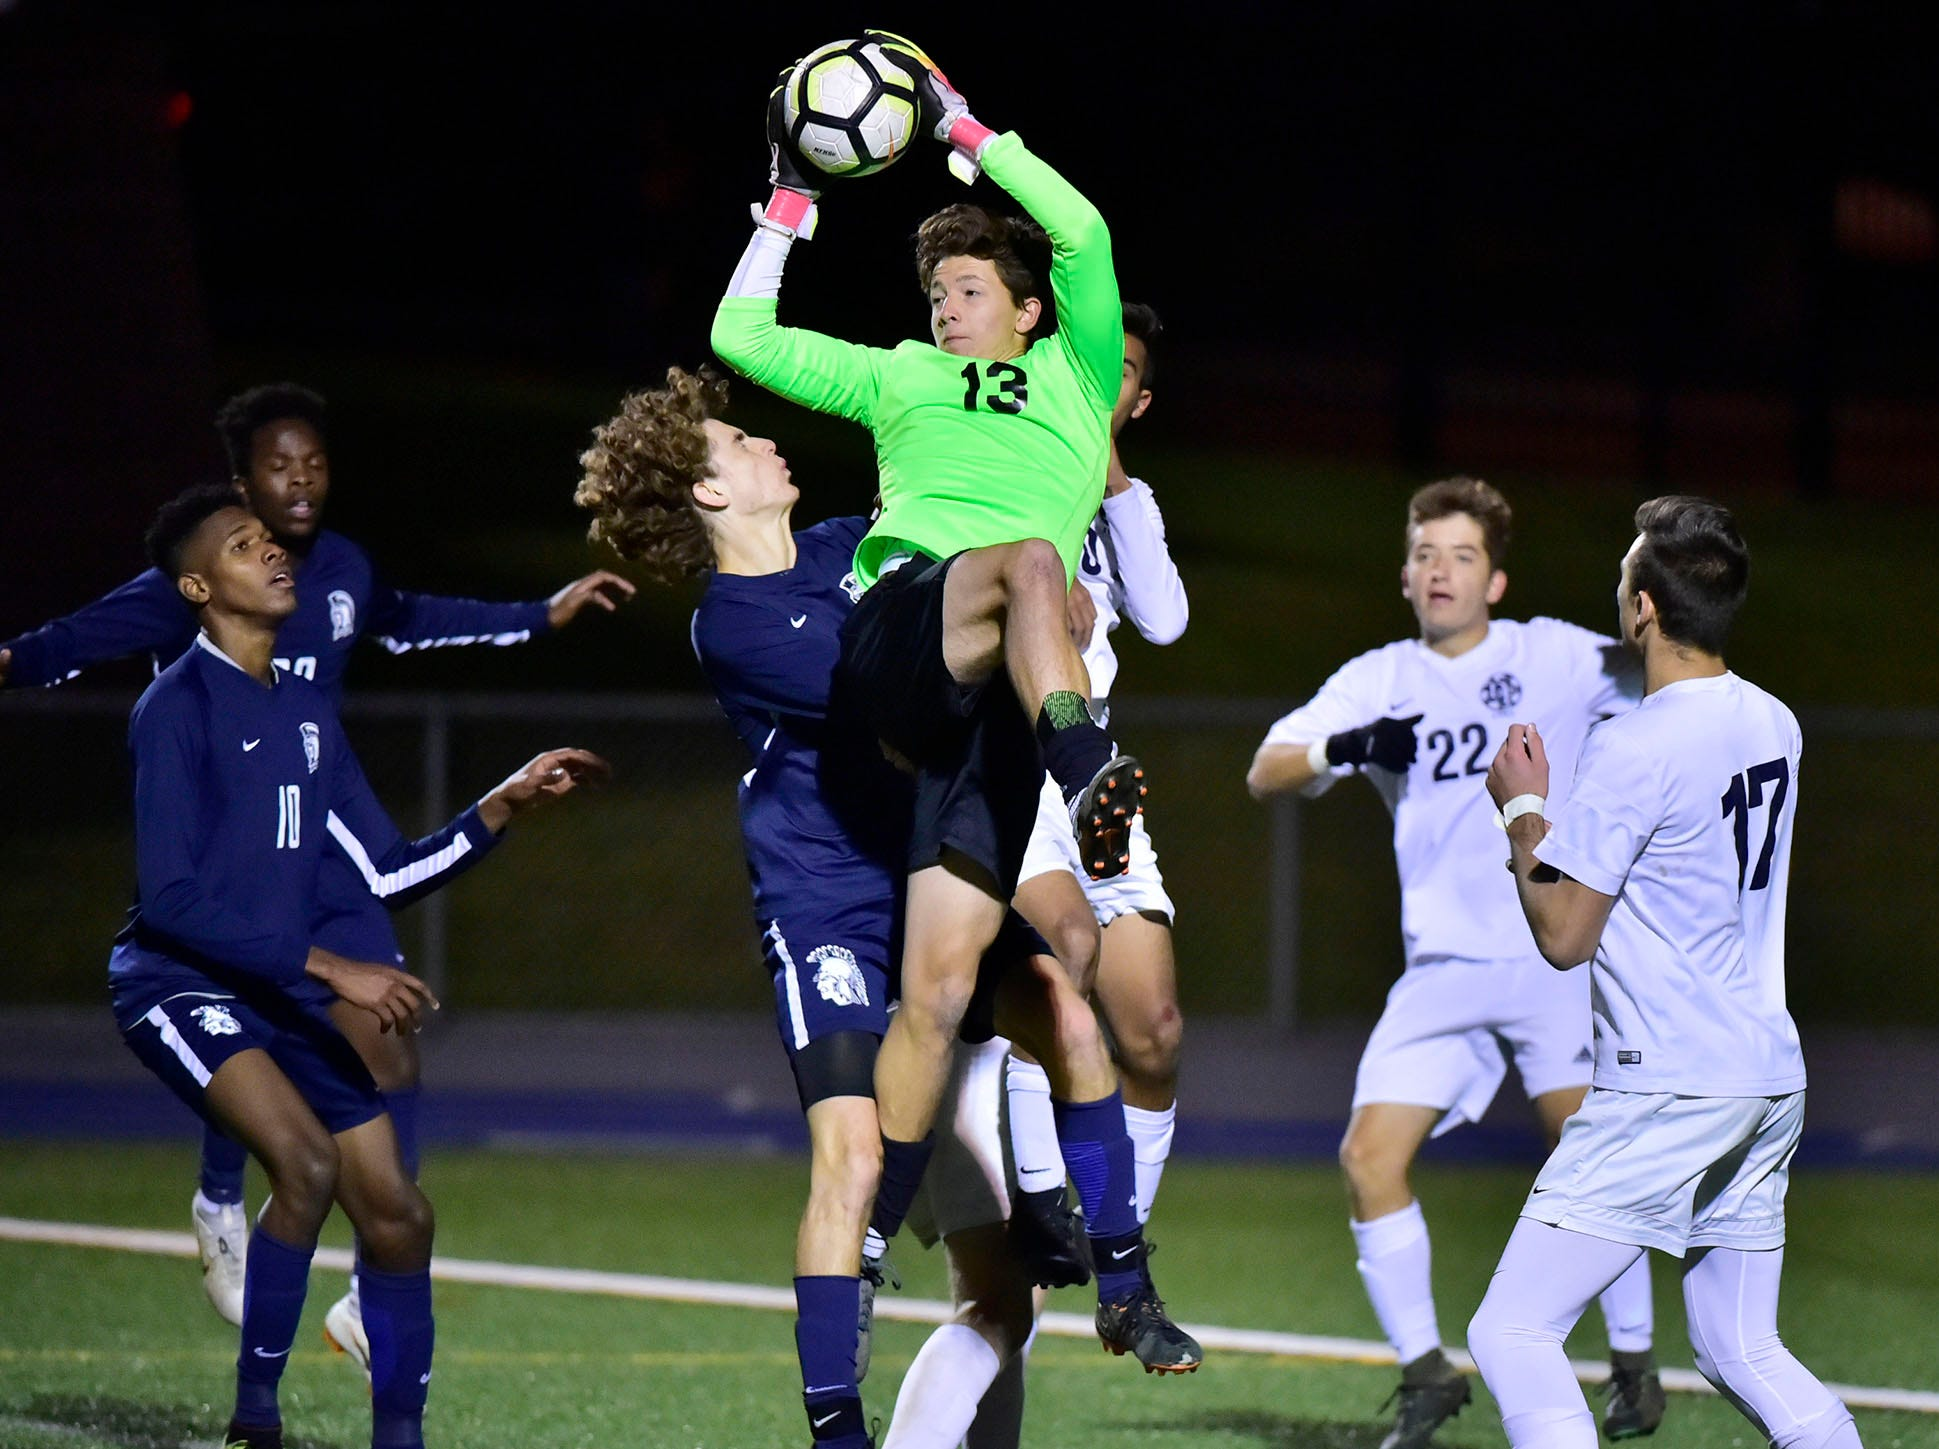 Keeper Gavin Conners (13) leaps to save the ball. Chambersburg lost a first round D3 soccer match to Dallastown 2-1 on Tuesday, Oct. 23, 2018.